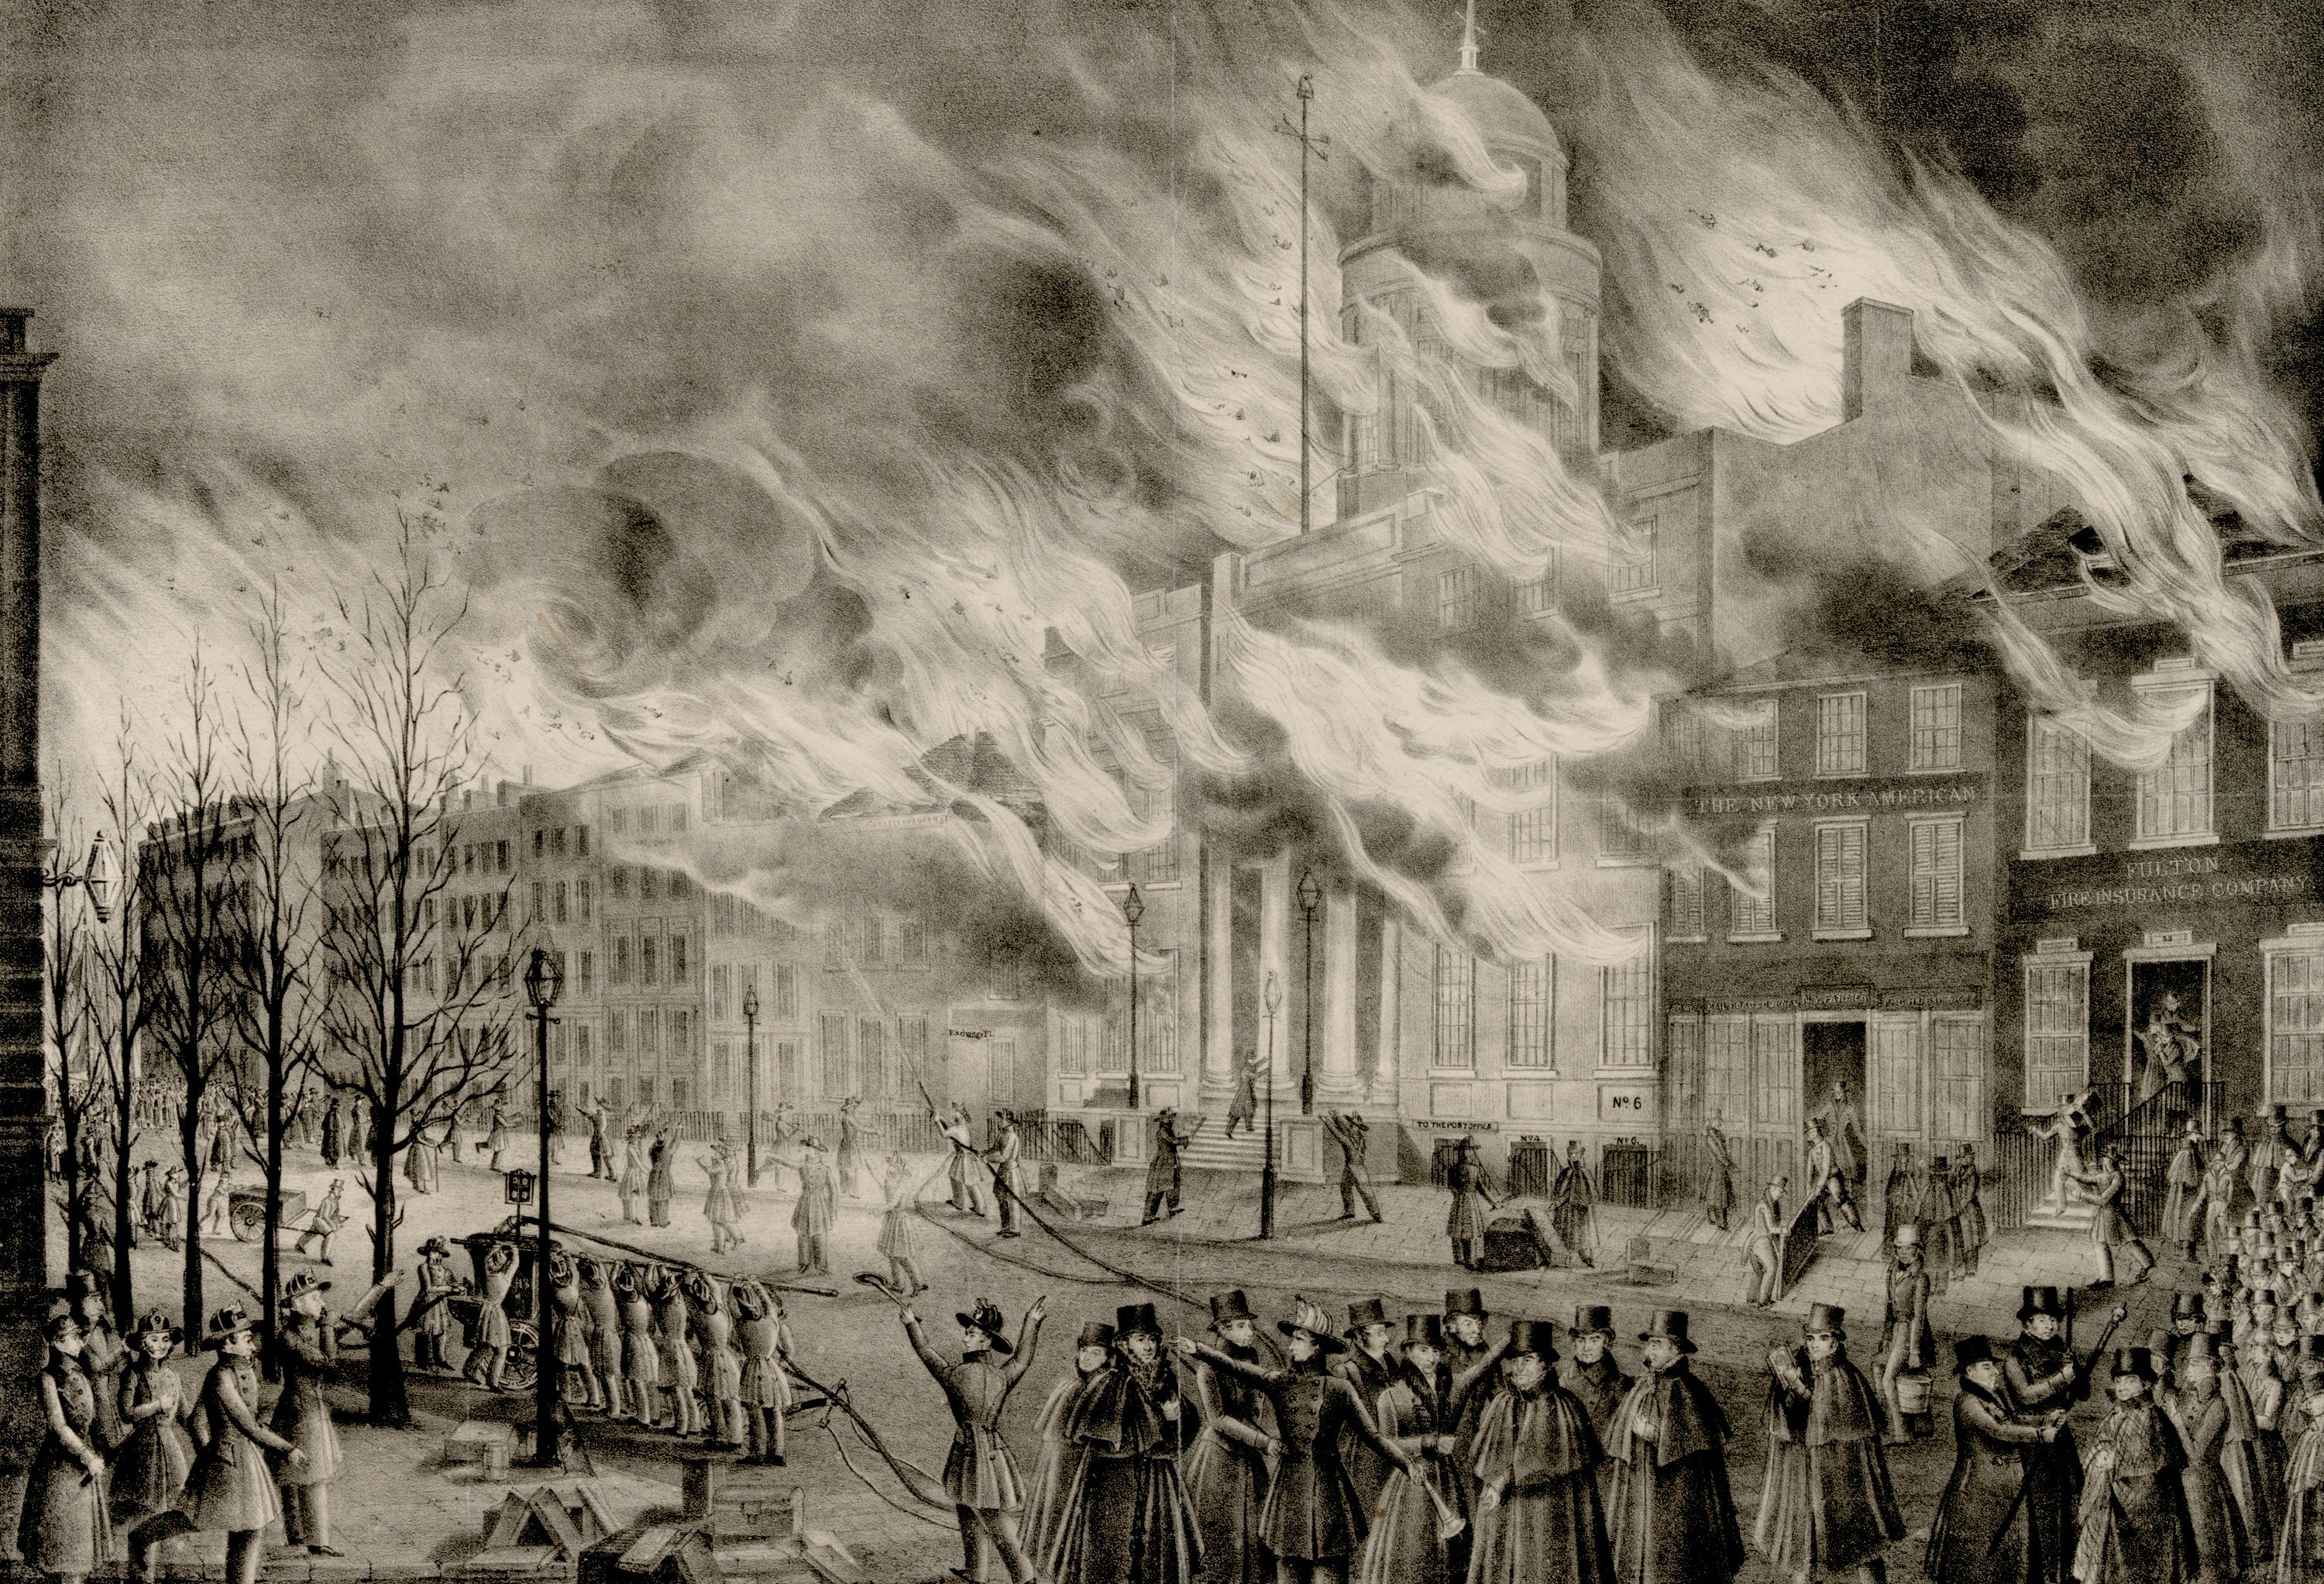 Depiction of the Great New York Fire of 1836